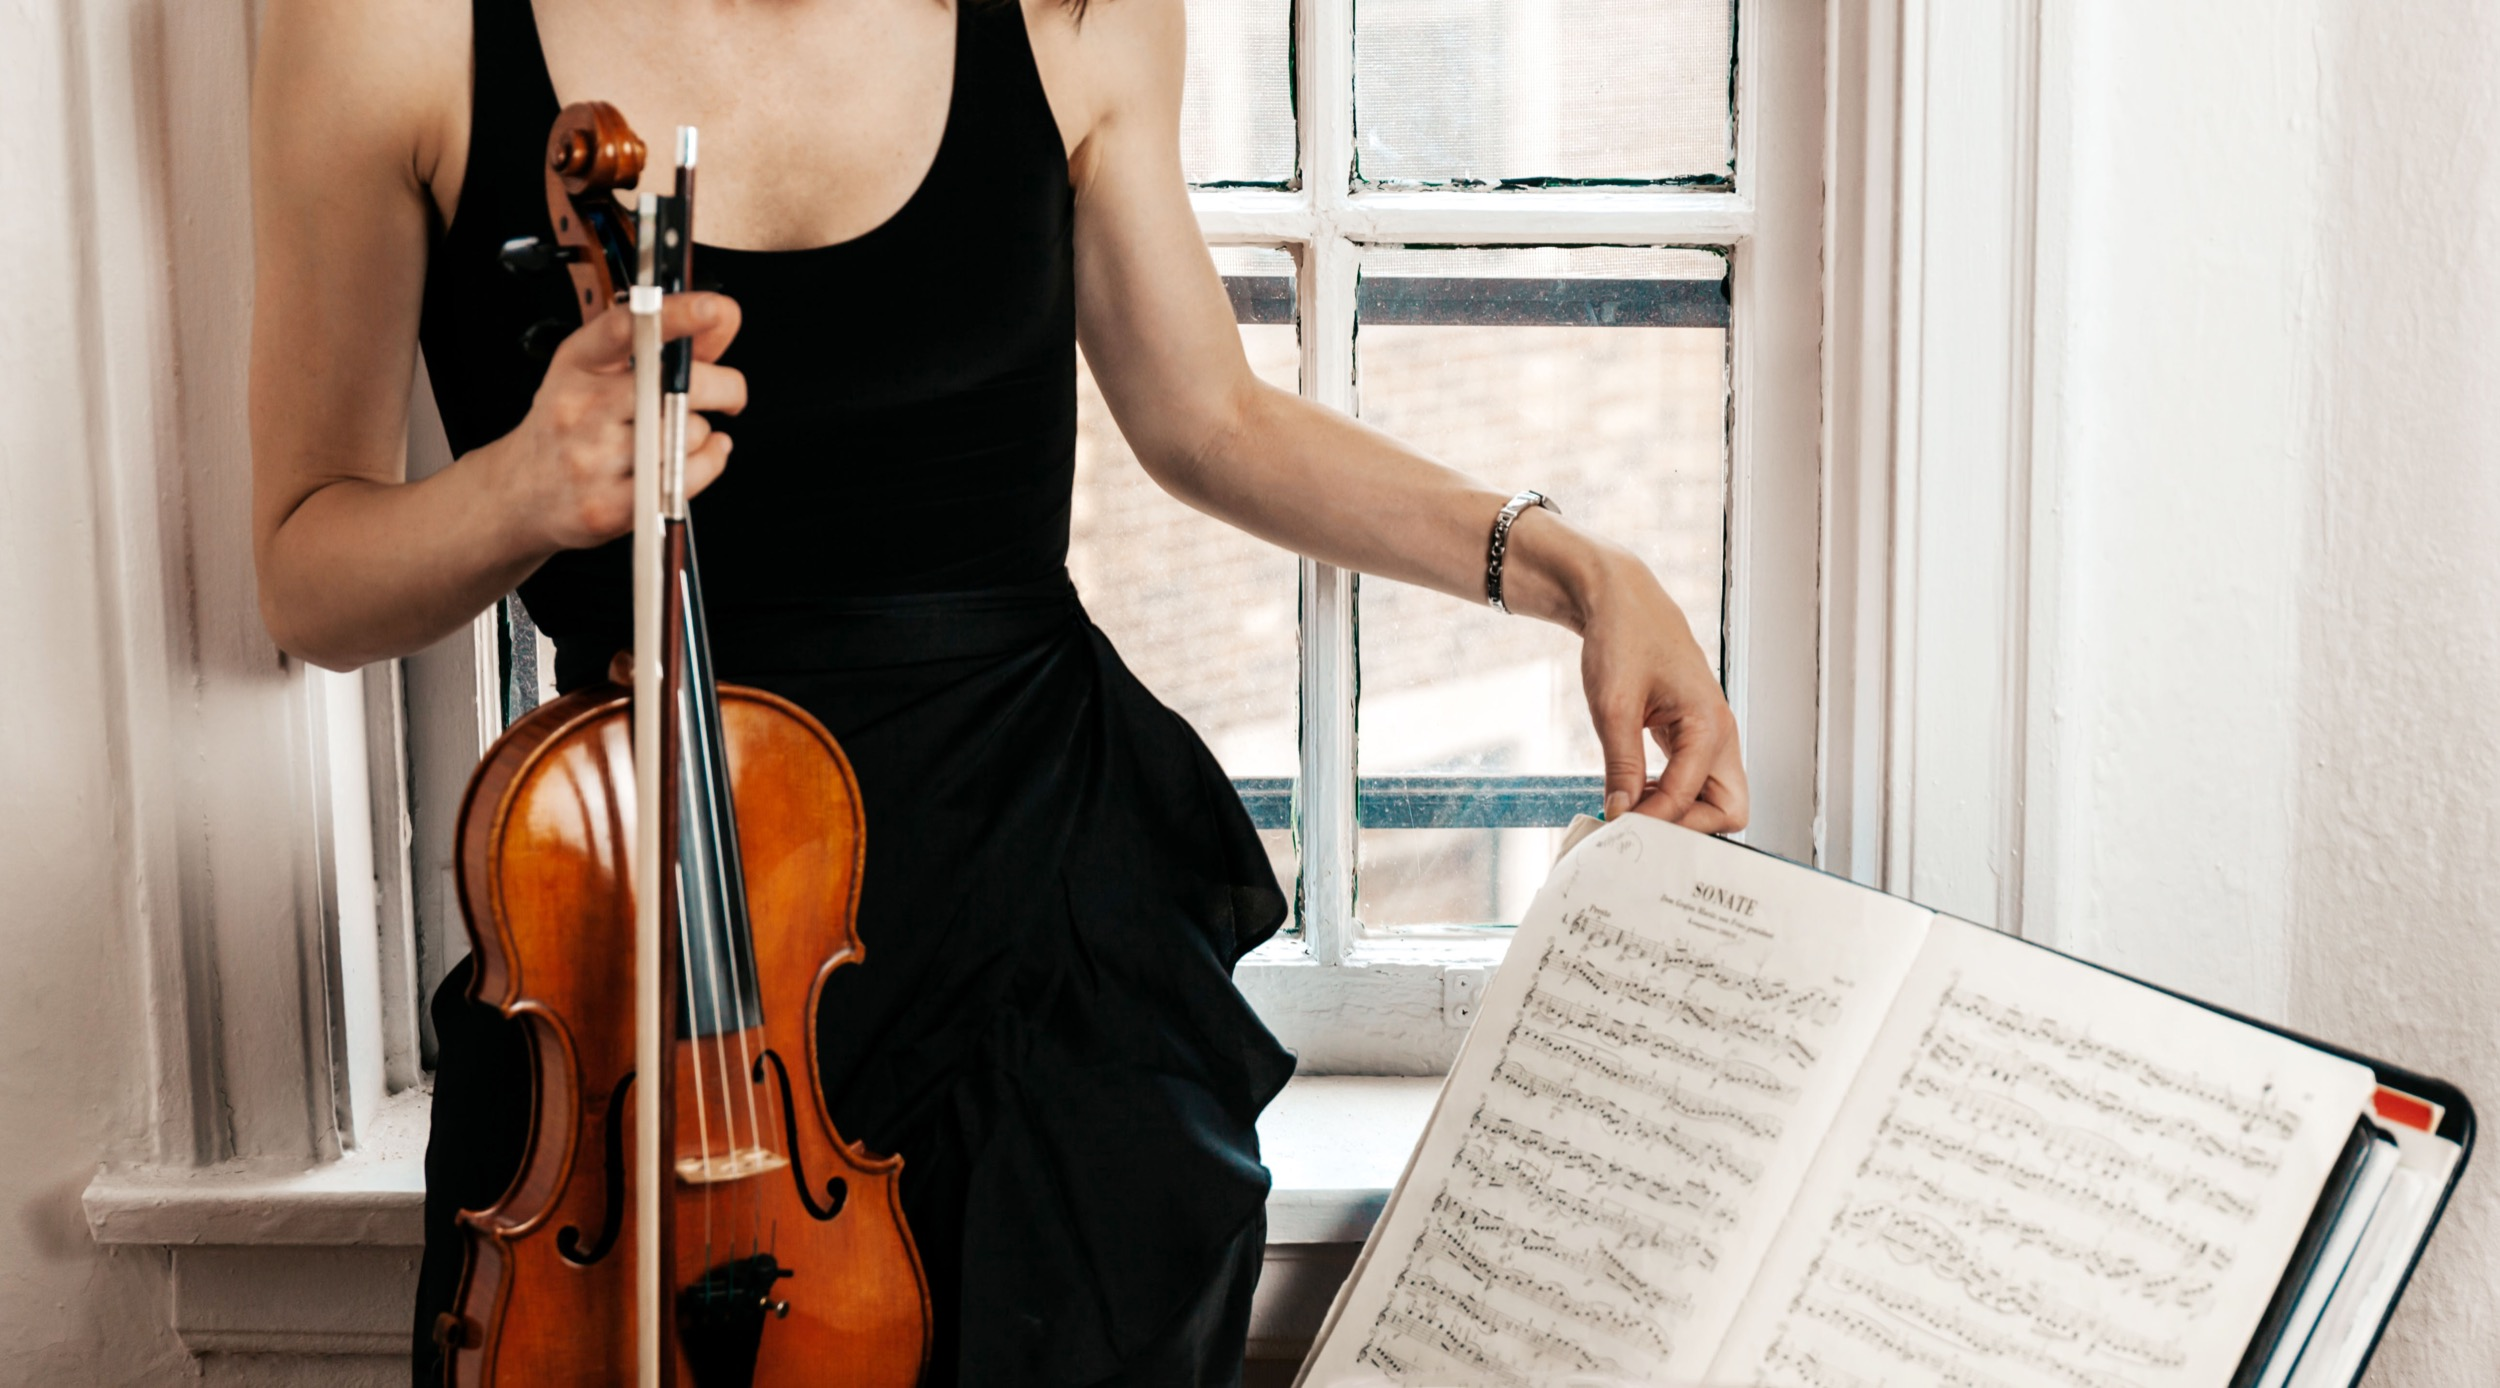 thin white woman in black dress holding her violin in front of an old painted white windowsill and preparing sheet music on a stand